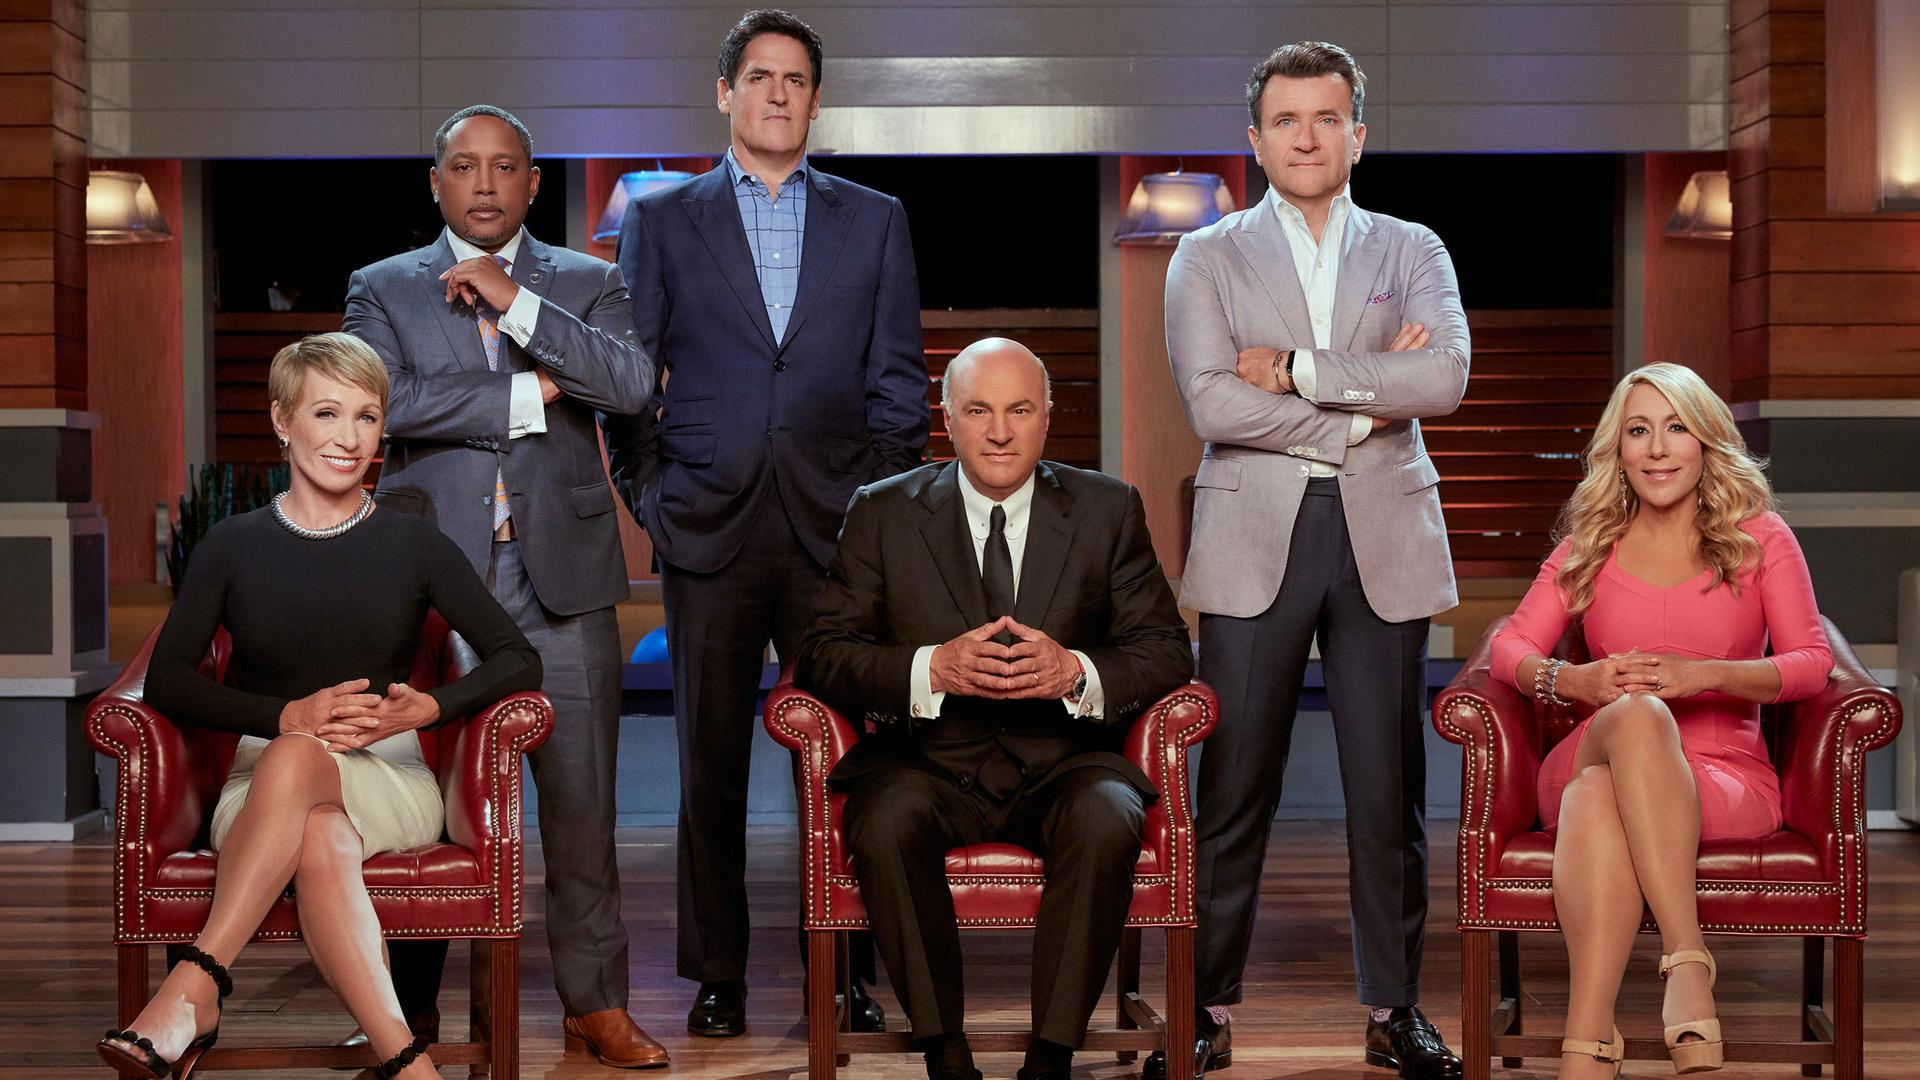 These Are the Most Ingenious Products from 'Shark Tank'